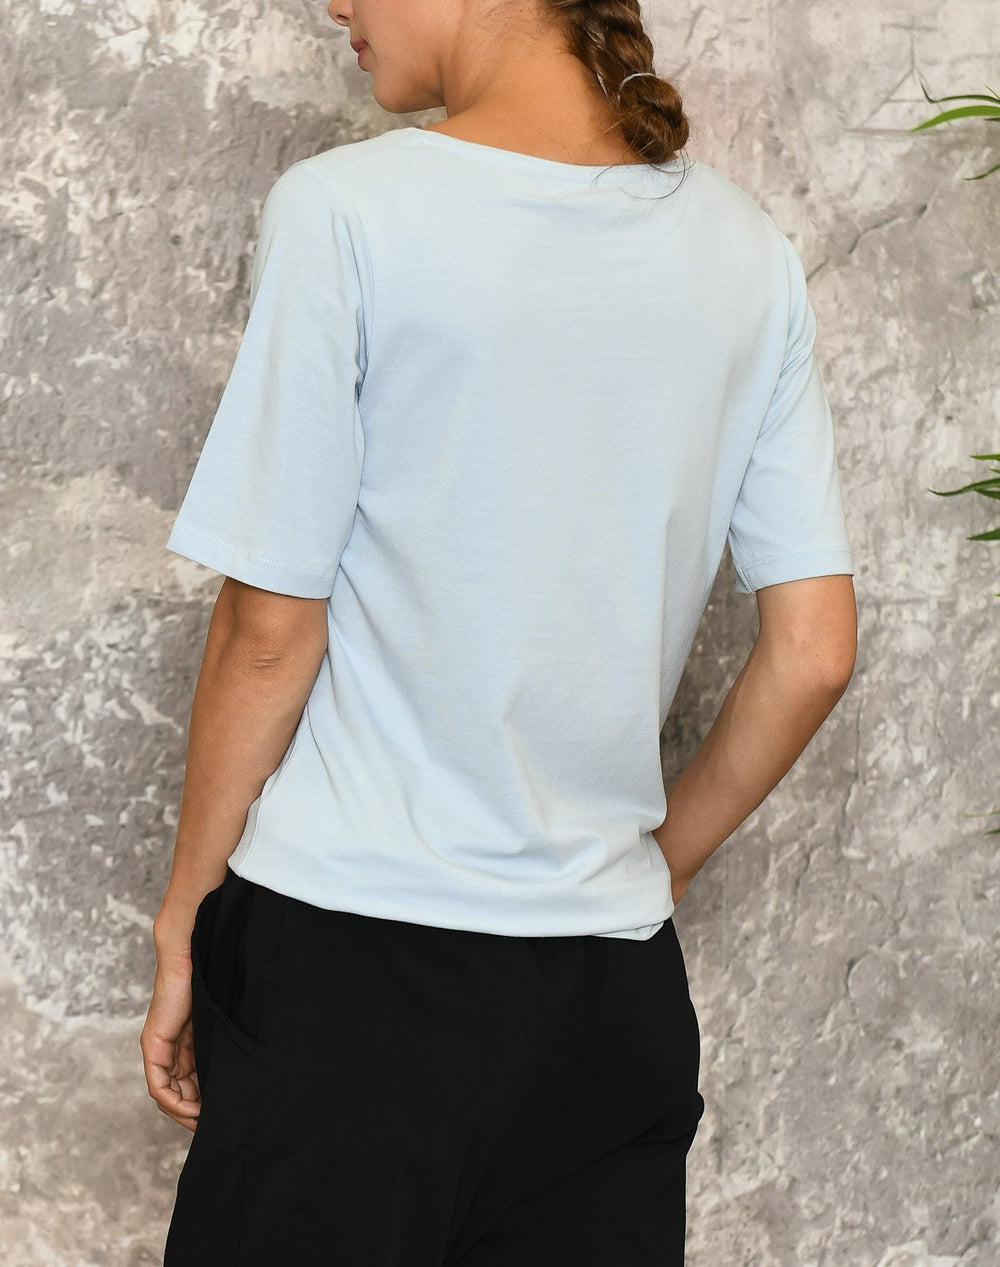 Ofelia Figen t-shirt light blue - Online-Mode